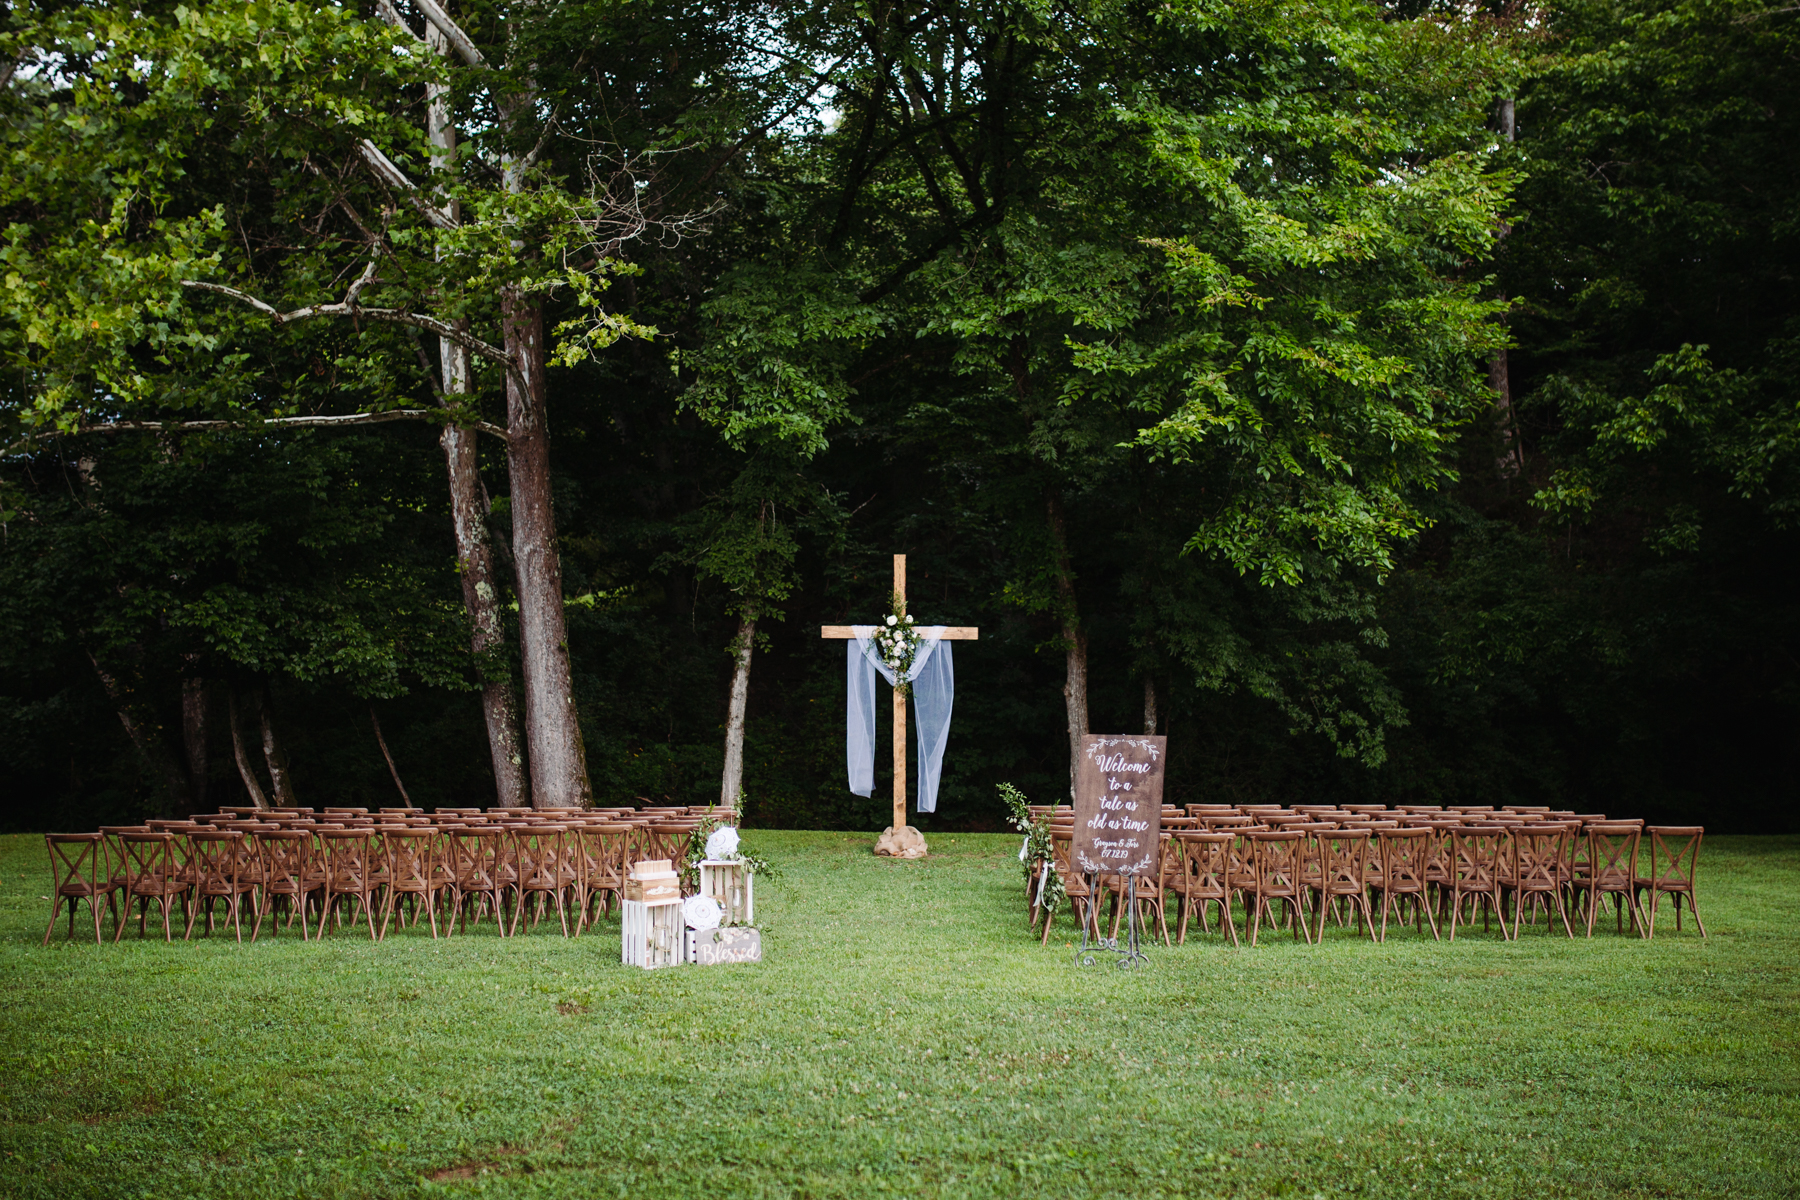 Ceremony set up at Sunny summer wedding at Dara's Garden in Knoxville, Tennessee